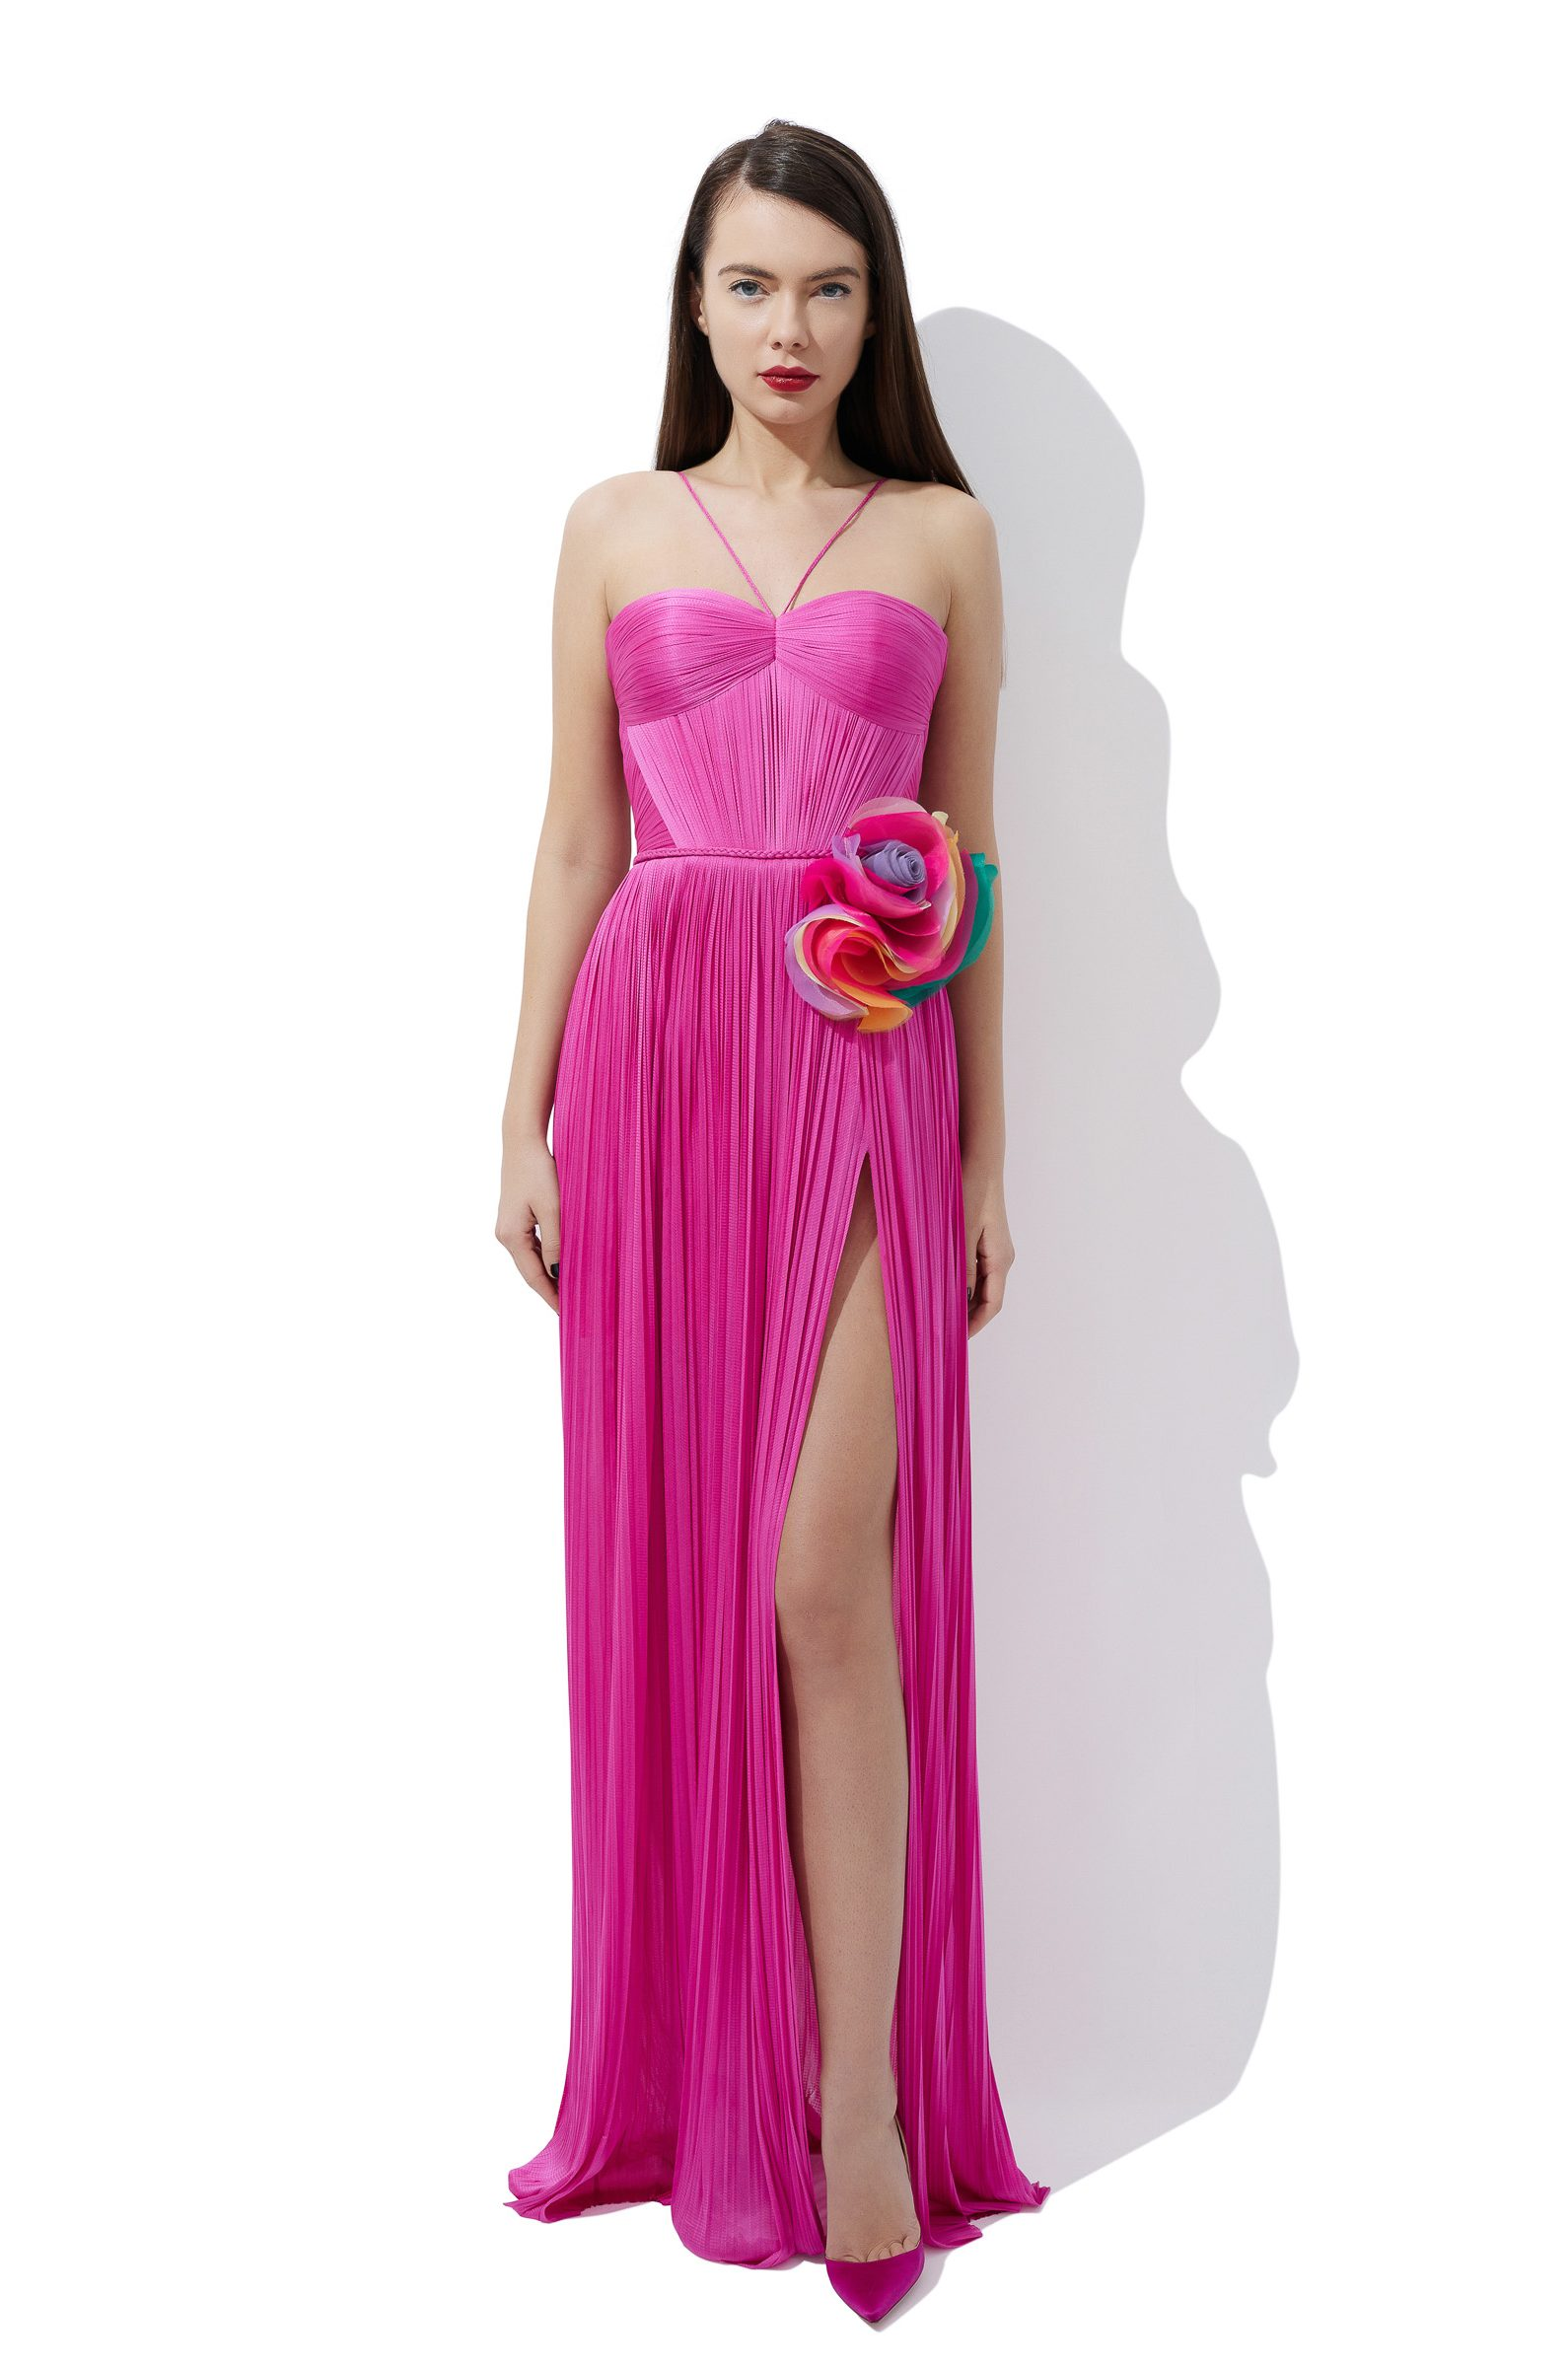 AmelieDraped silk corset gown with ruffled flowers